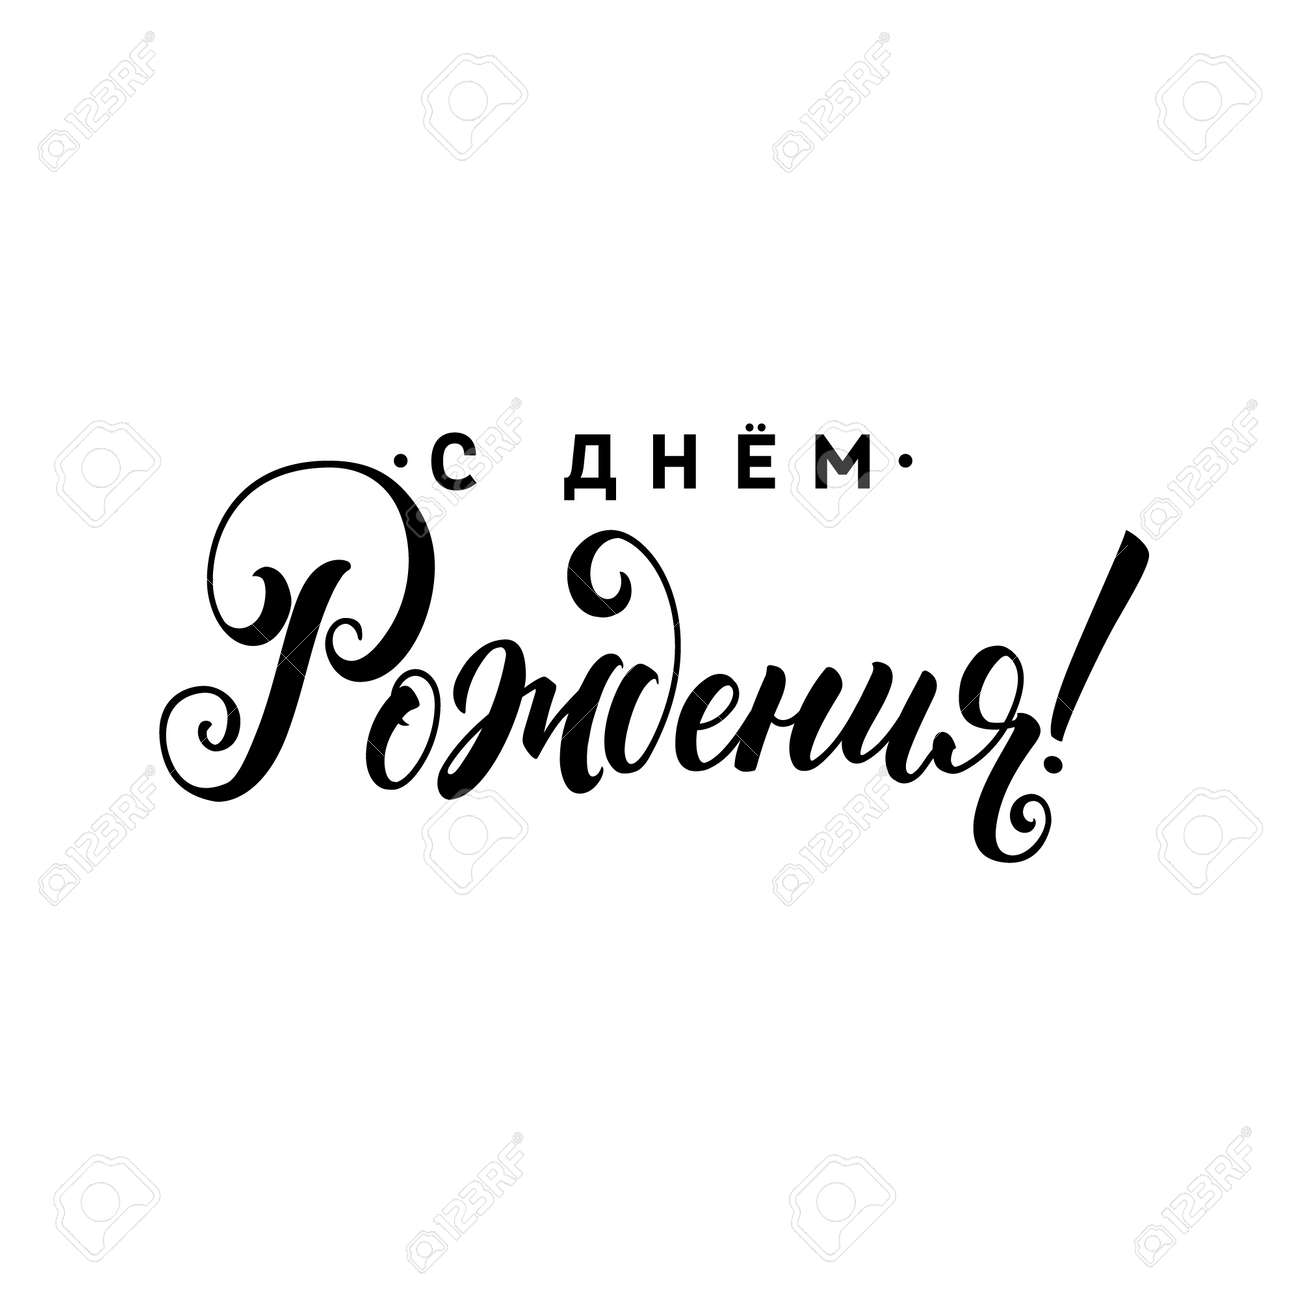 Happy Birthday To You Calligraphy Greeting Card Russian Hand Lettering